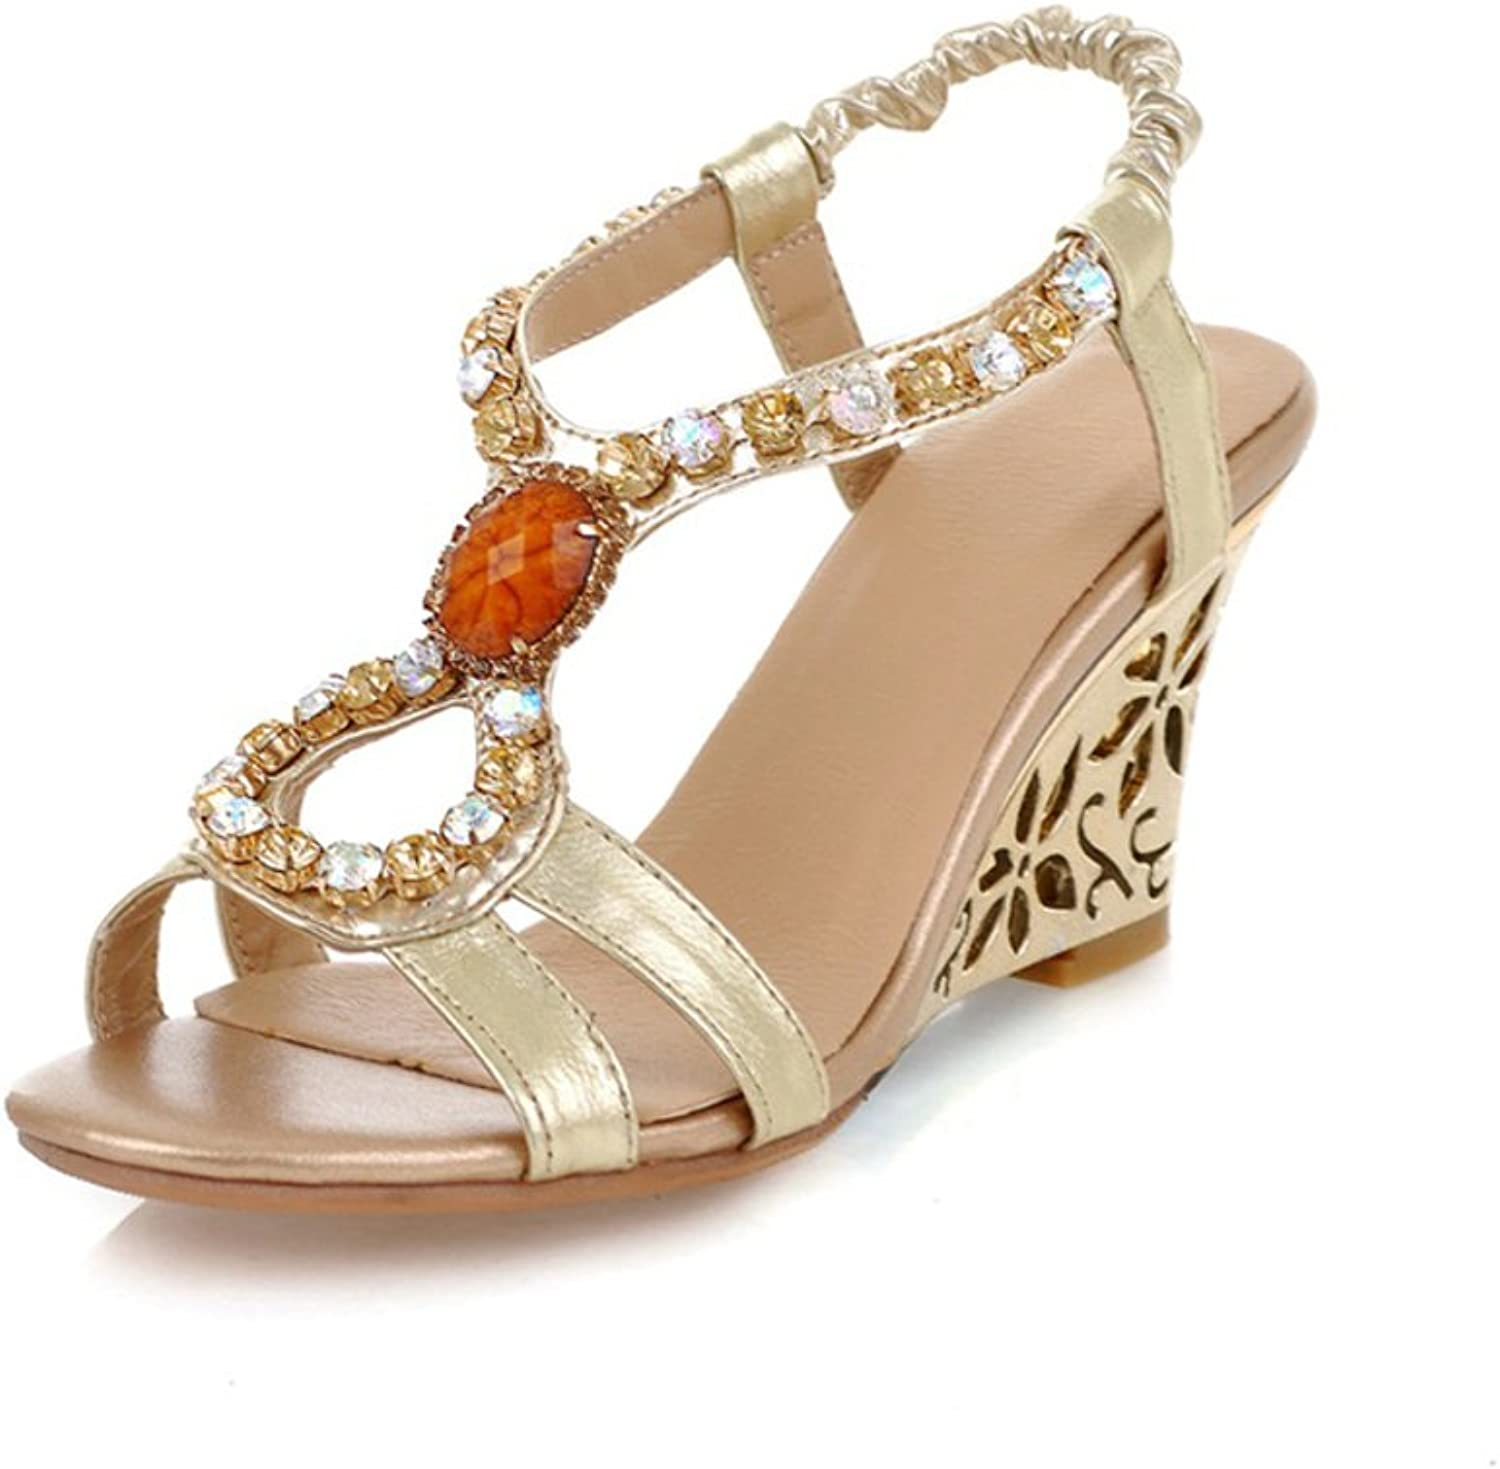 RHFDVGDS Summer women sandal wedges cut ladies shoes Rhinestone peep-toe leather ladies high heels